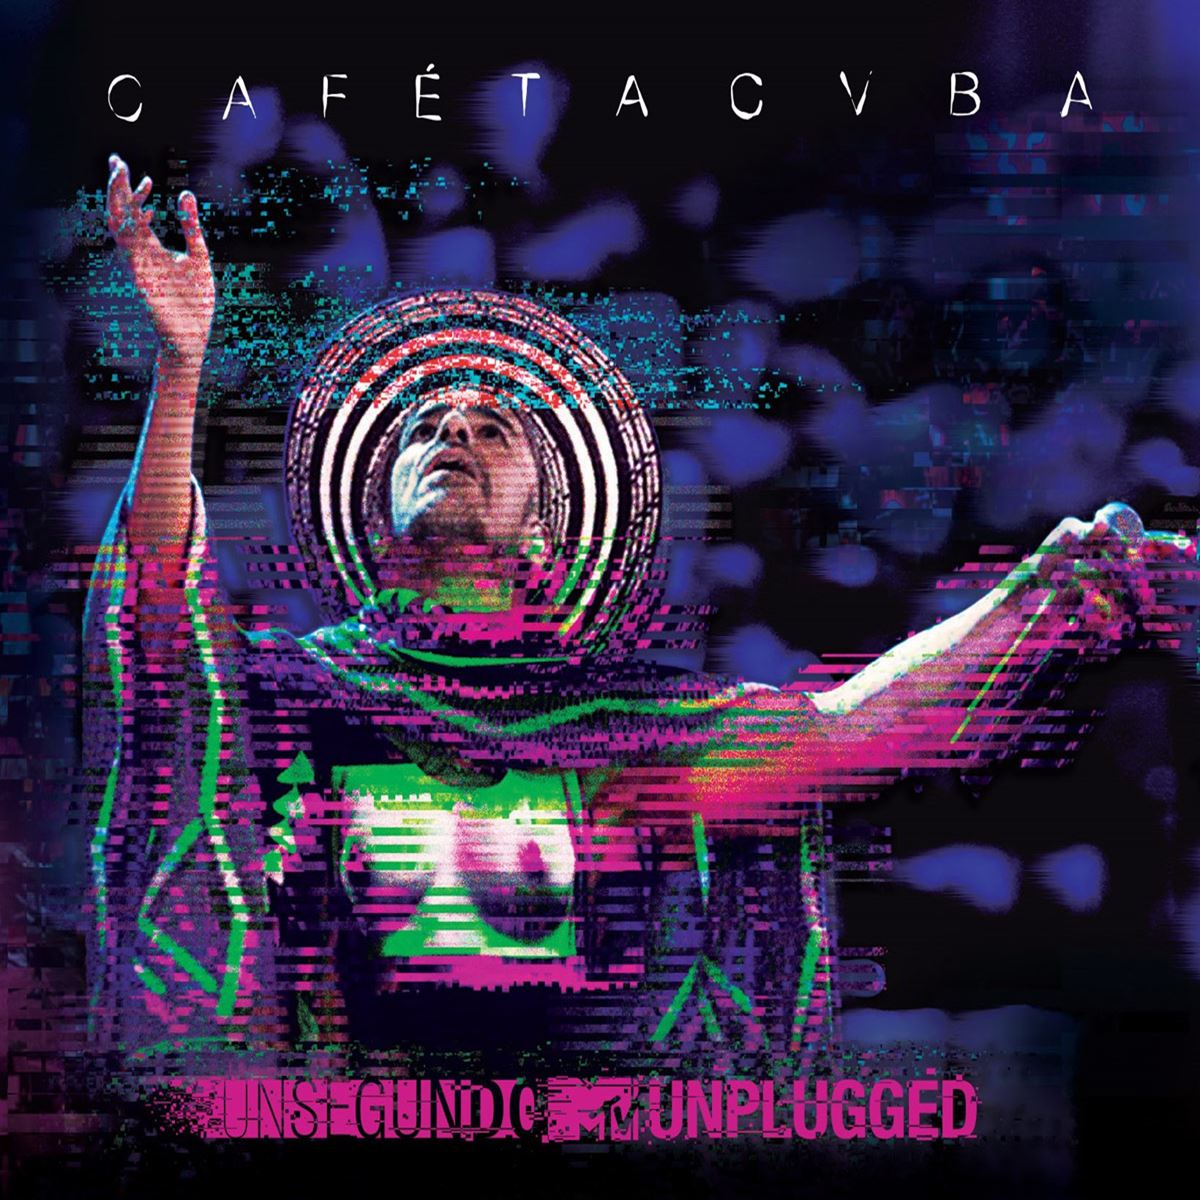 CD + DVD Cafe Tacvba Un Segundo MTV Unplugged